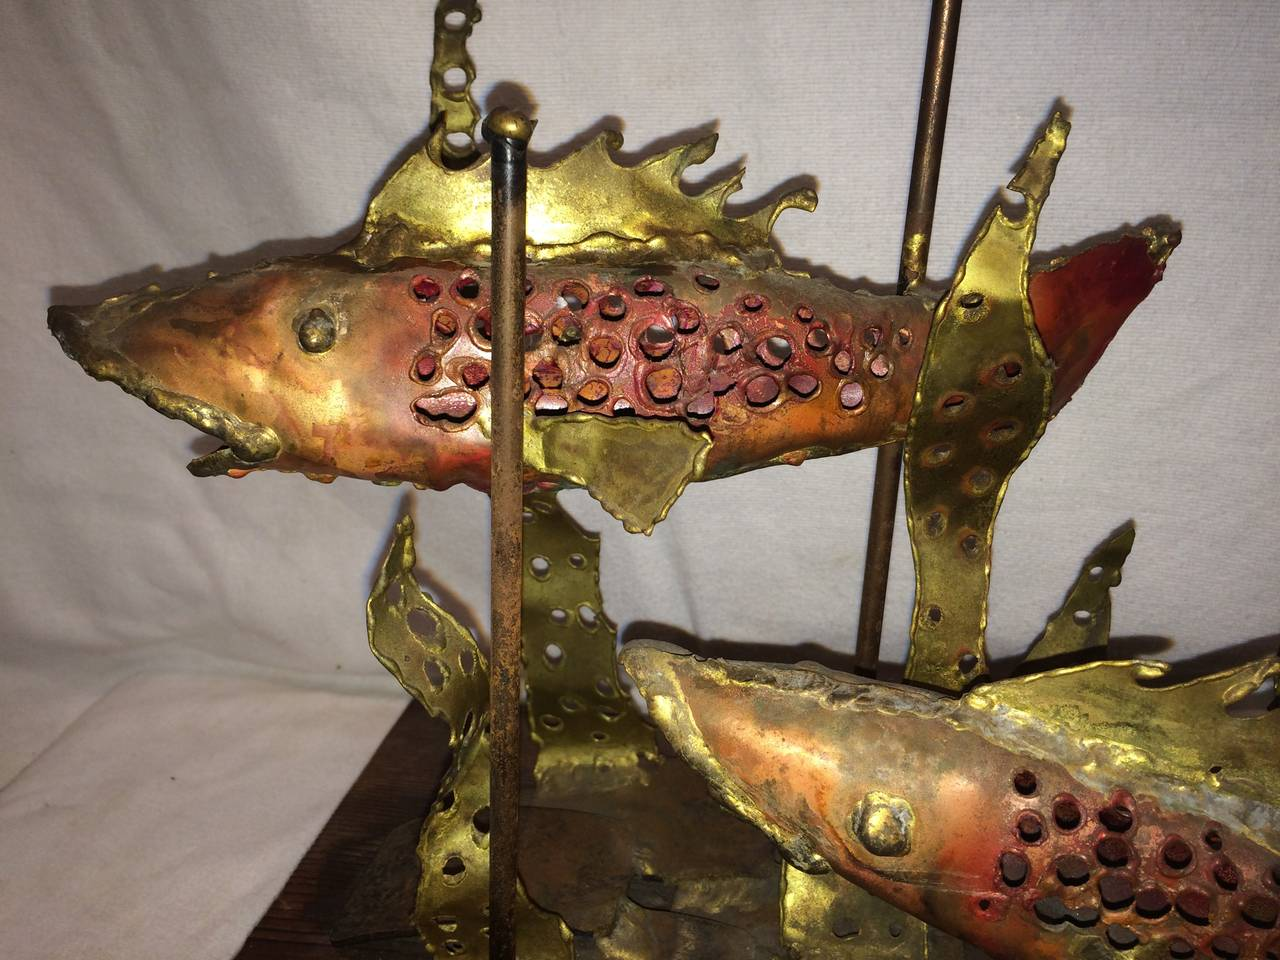 Signed Brutalist Sculpture of Fish by Segal In Excellent Condition For Sale In Redding, CT